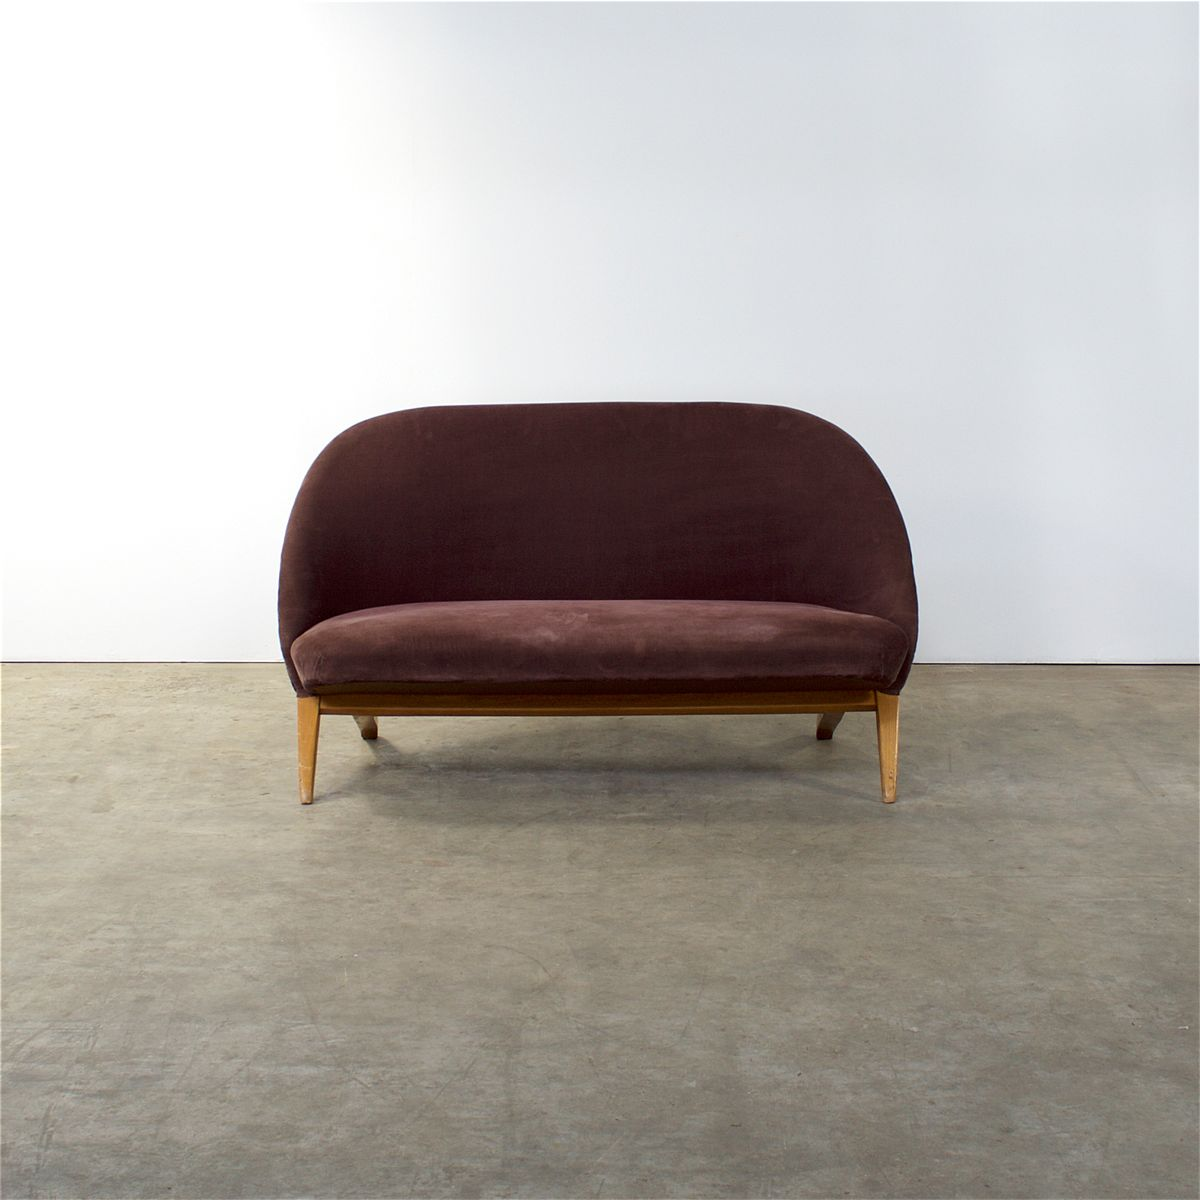 Congo Sofa By Theo Ruth For Artifort 1950s For Sale At Pamono